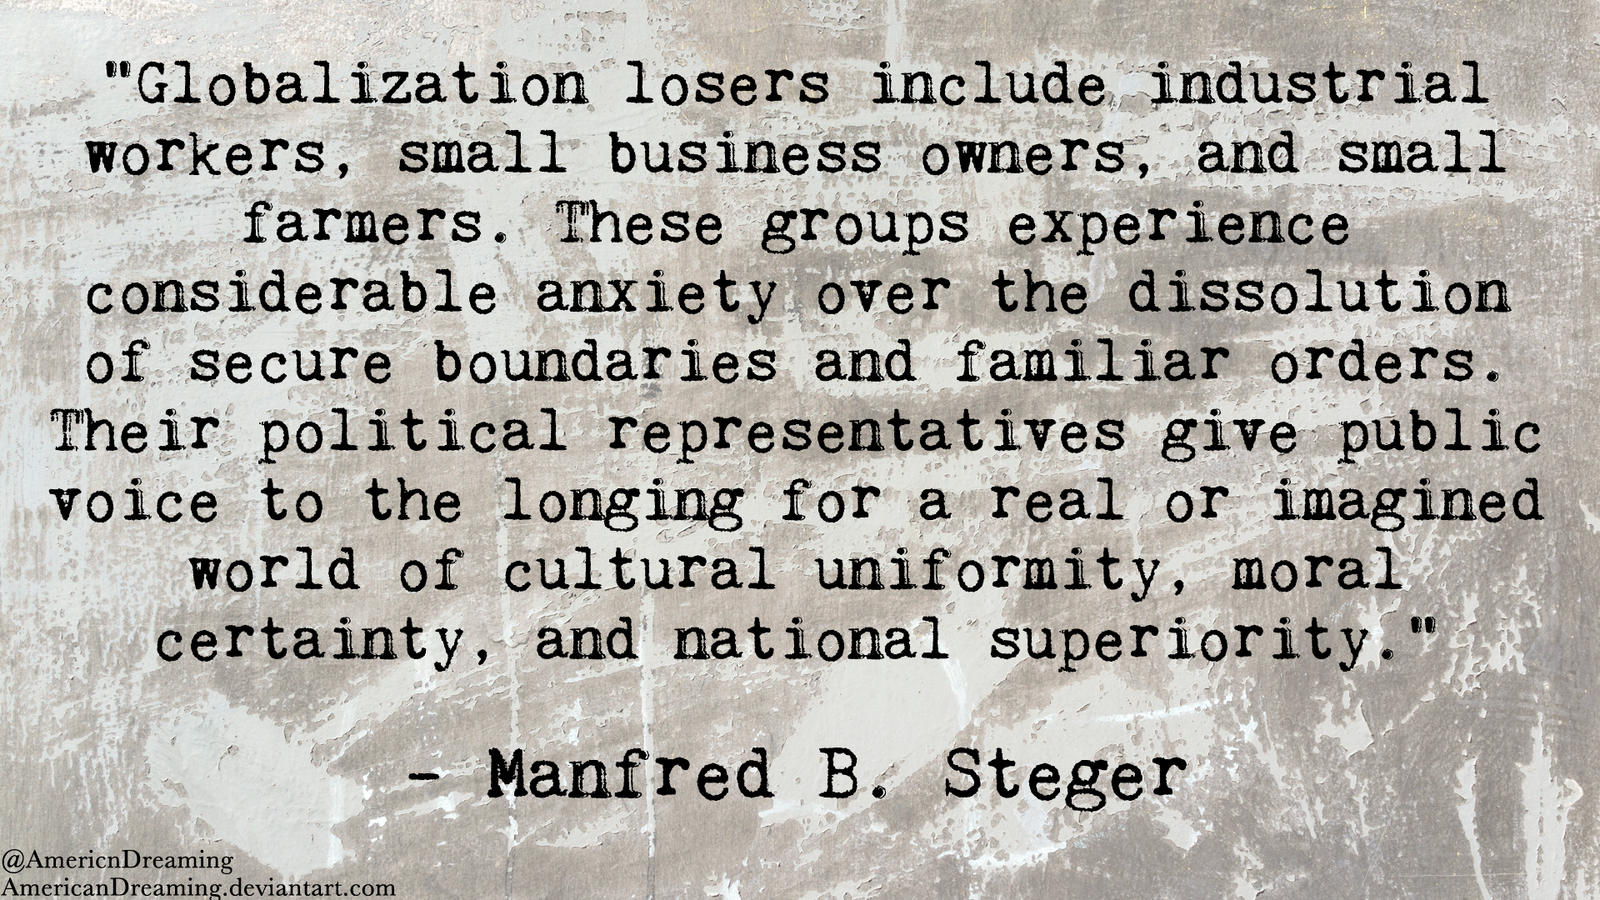 Globalization Losers by AmericanDreaming